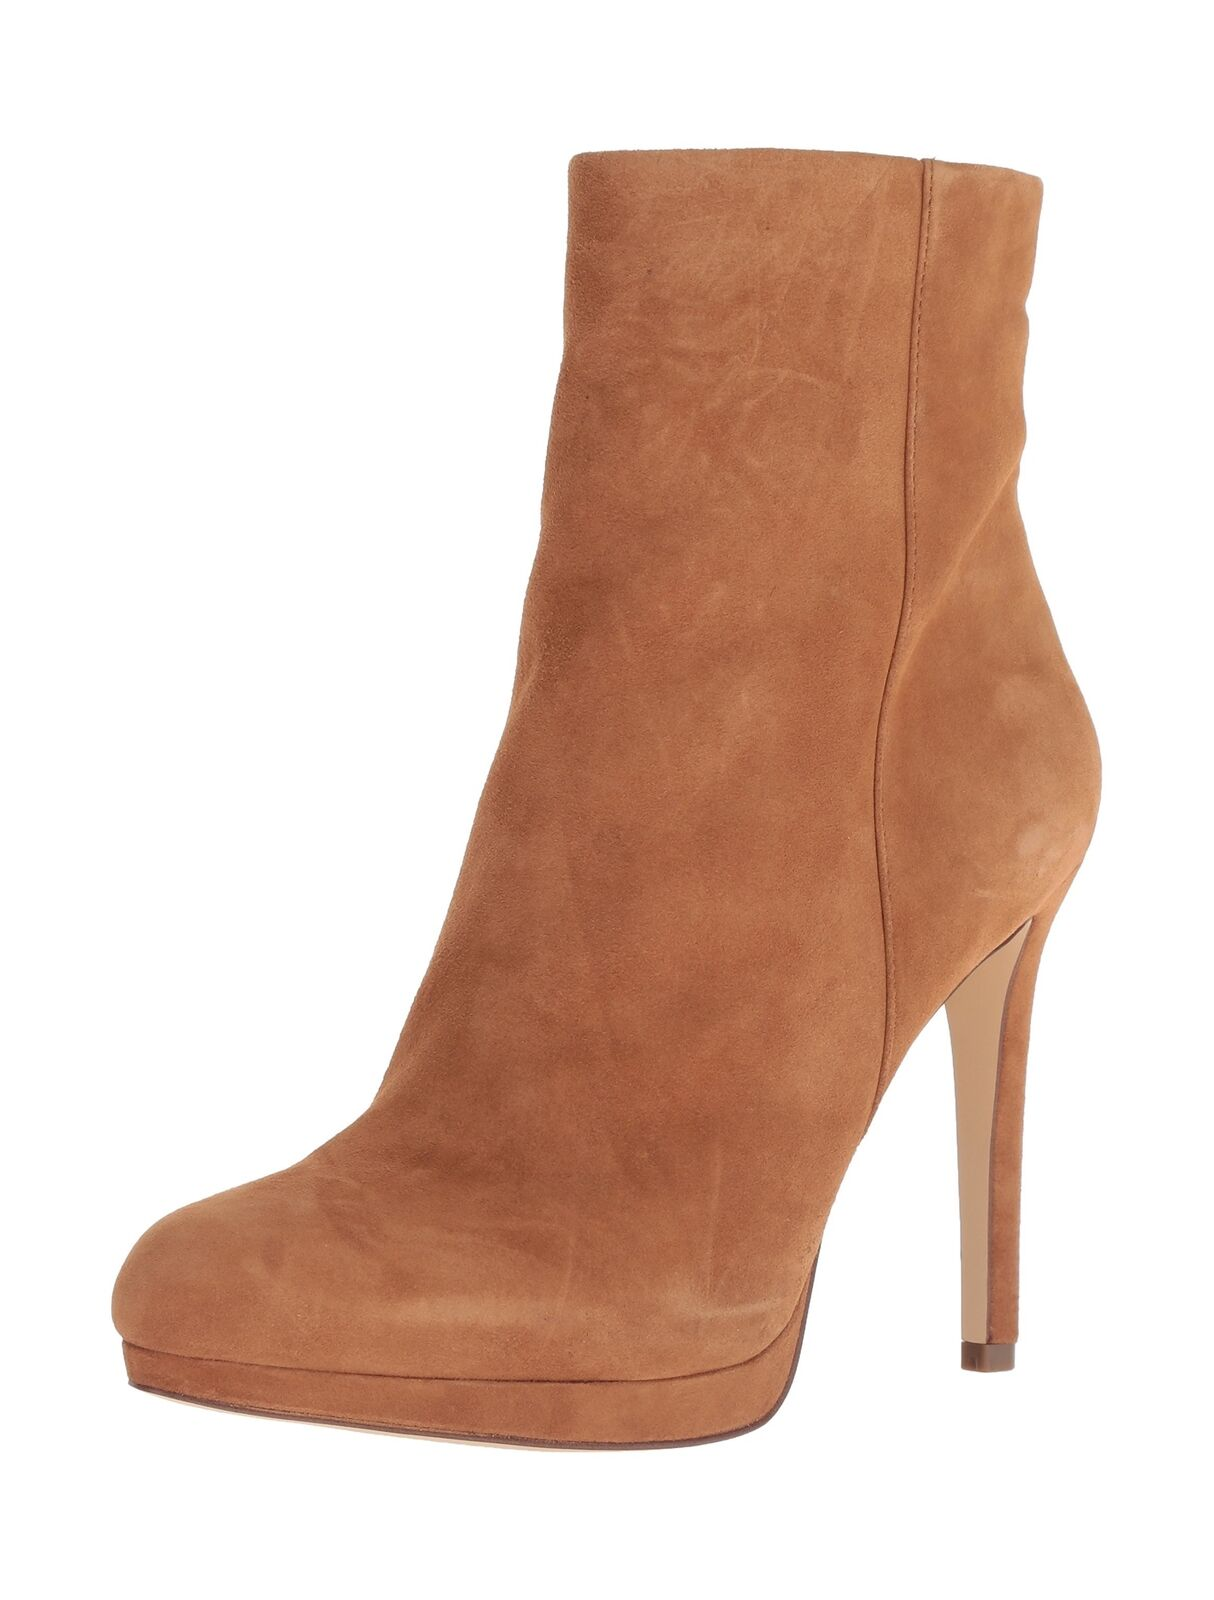 Nine West Women''s Nwquanette Ankle Boots Brown (Couio Couio) 8 UK